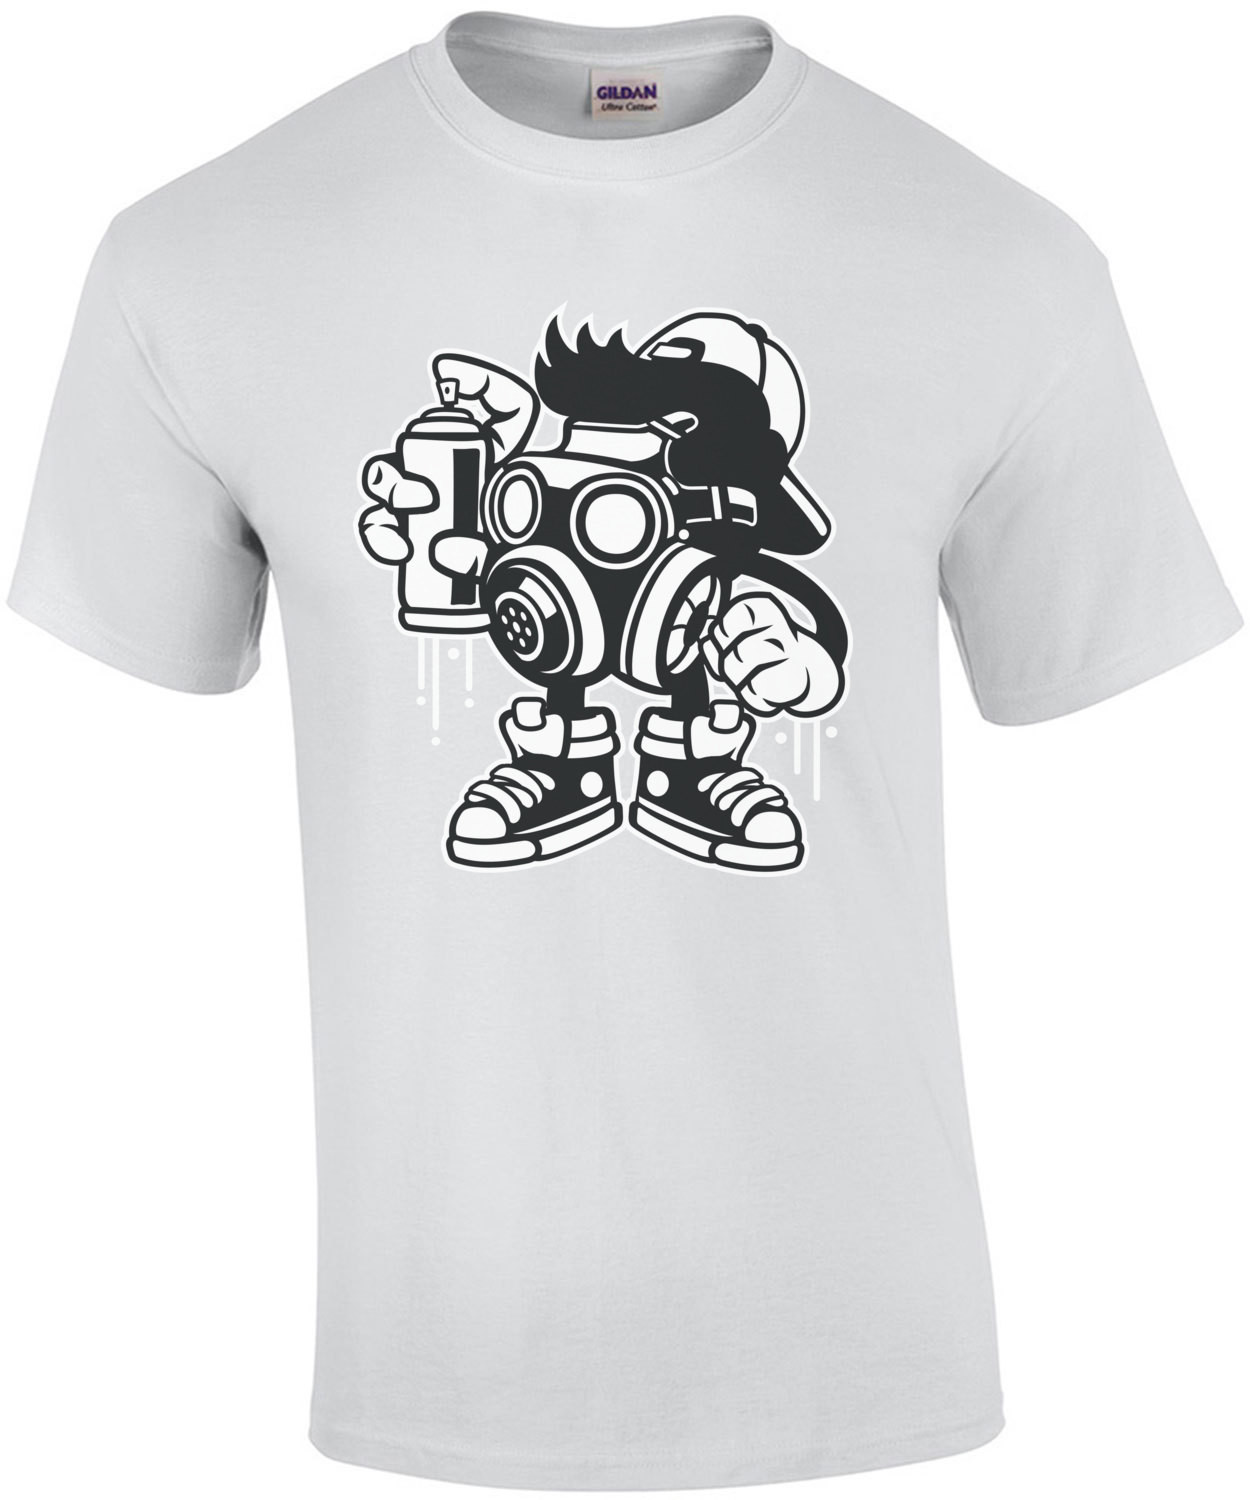 Bomber Graffiti T-Shirt